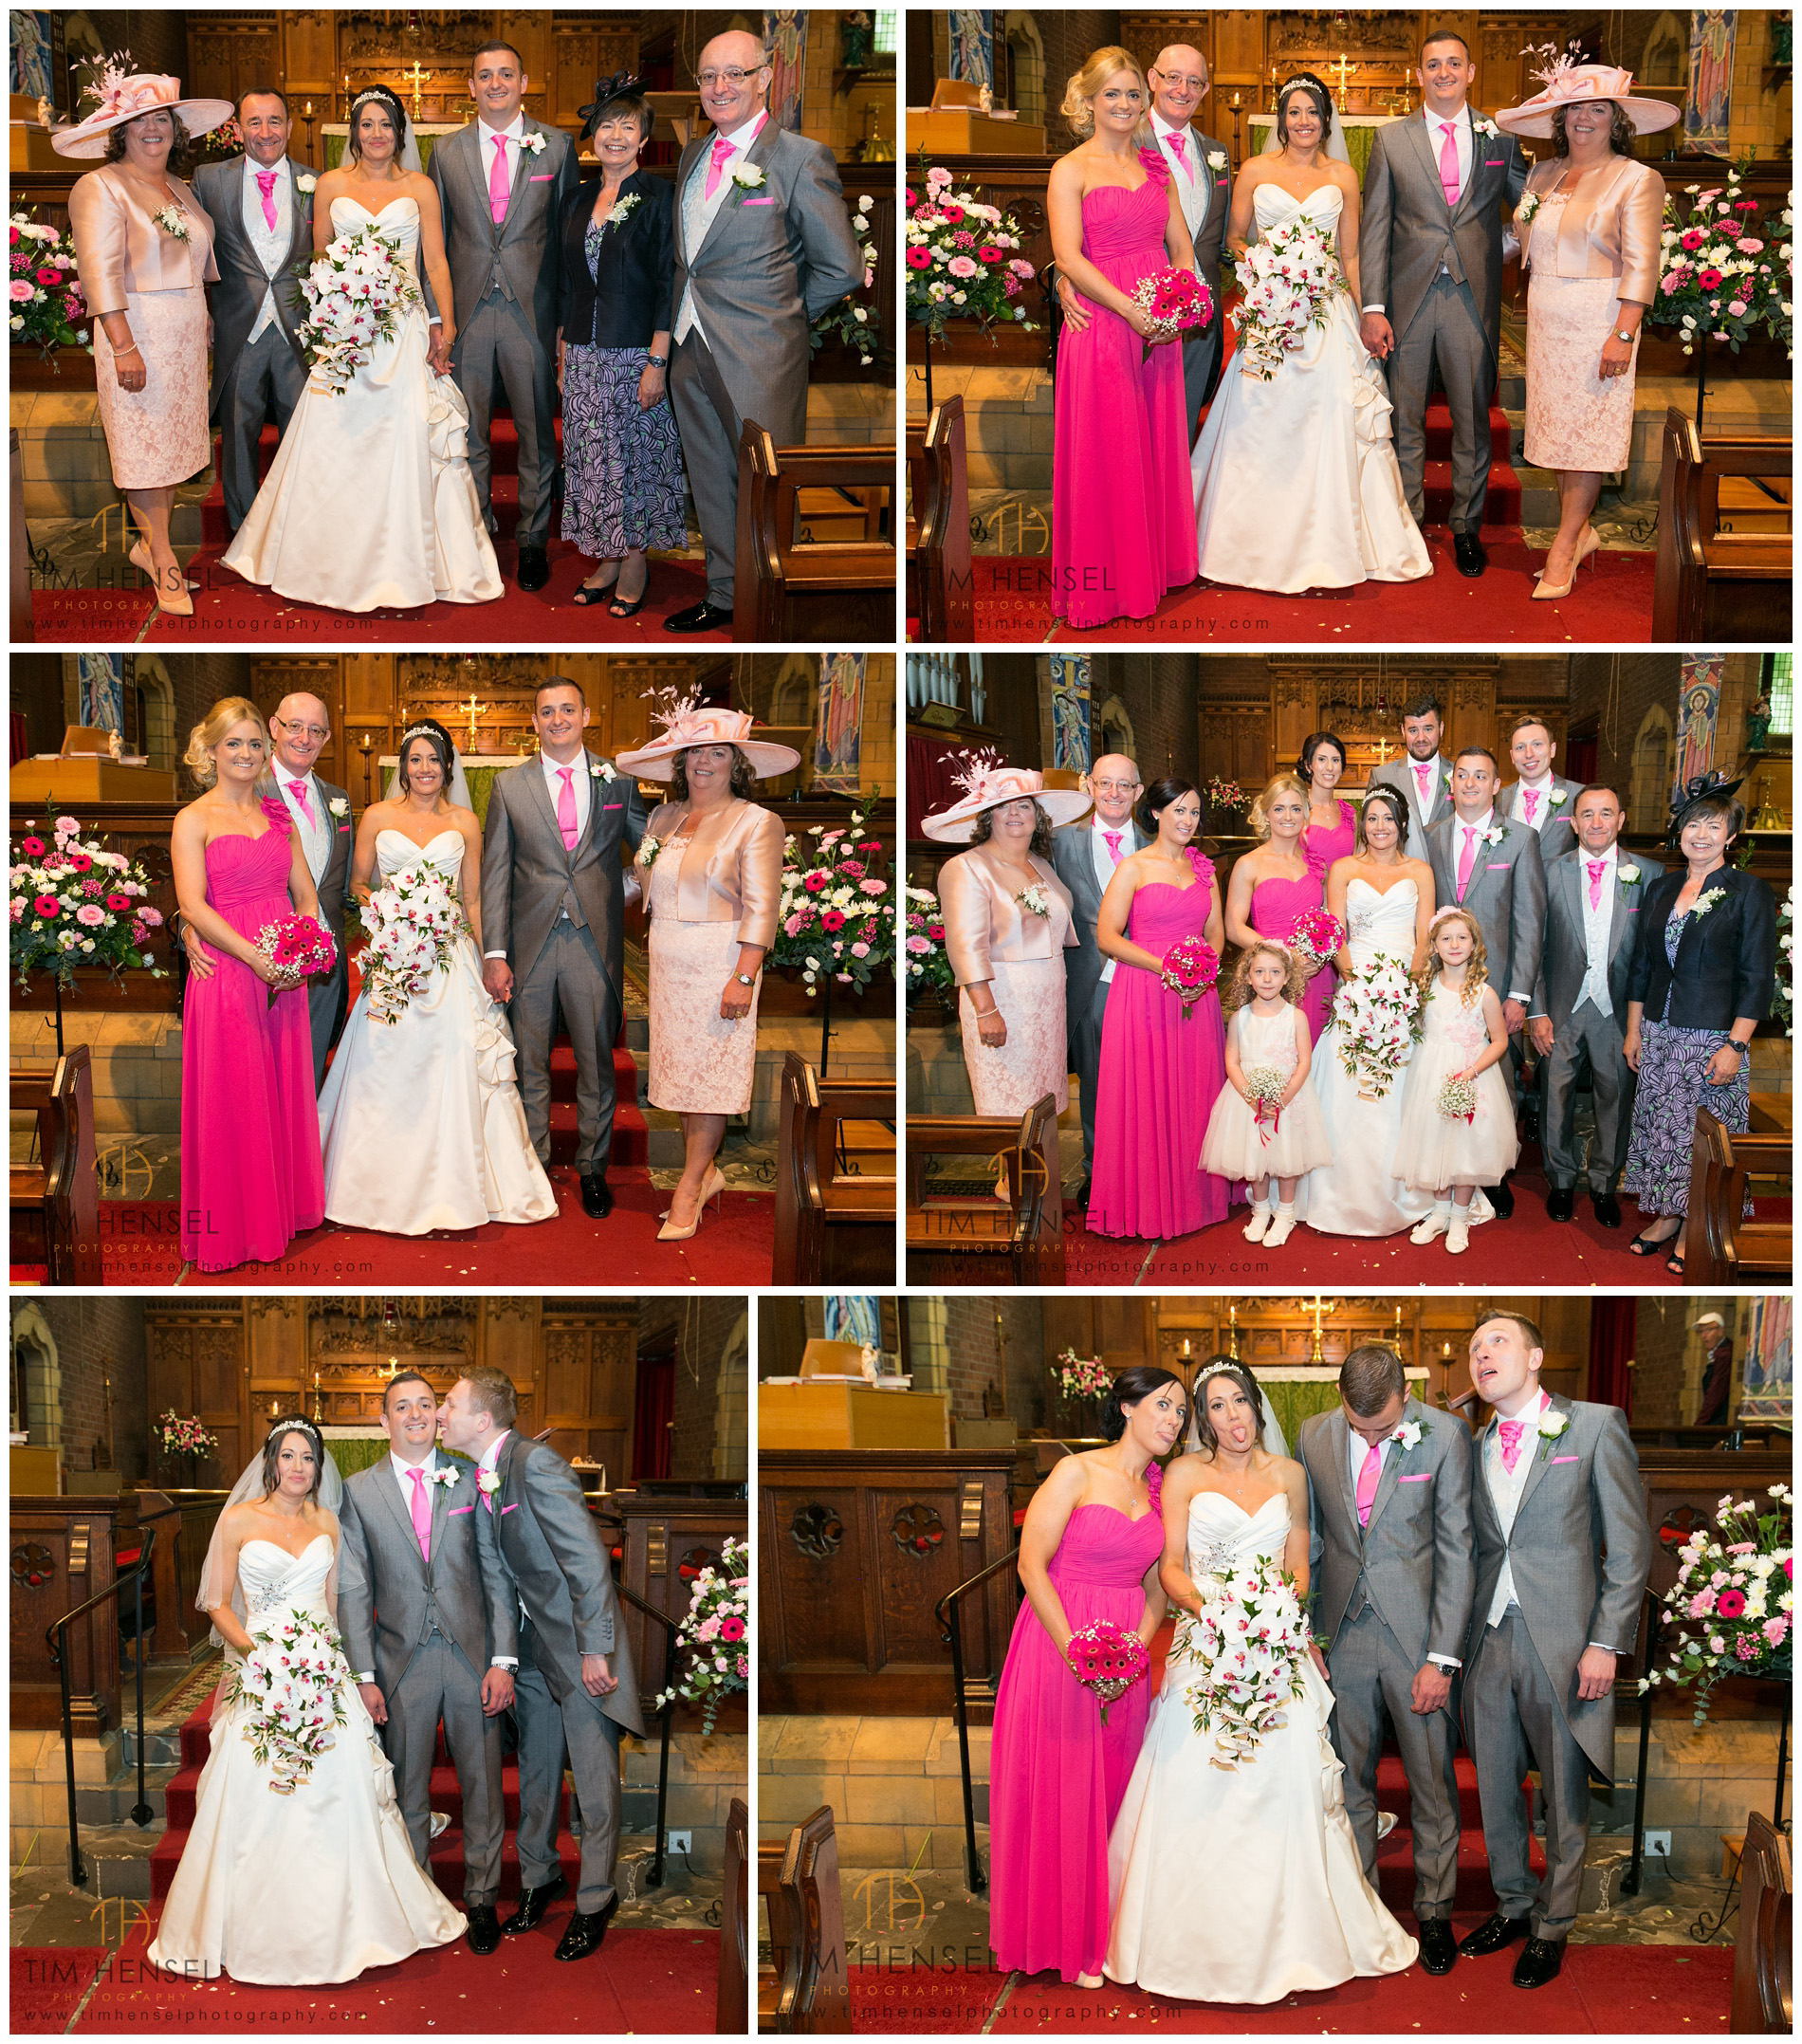 Family group wedding photographs in Stockport